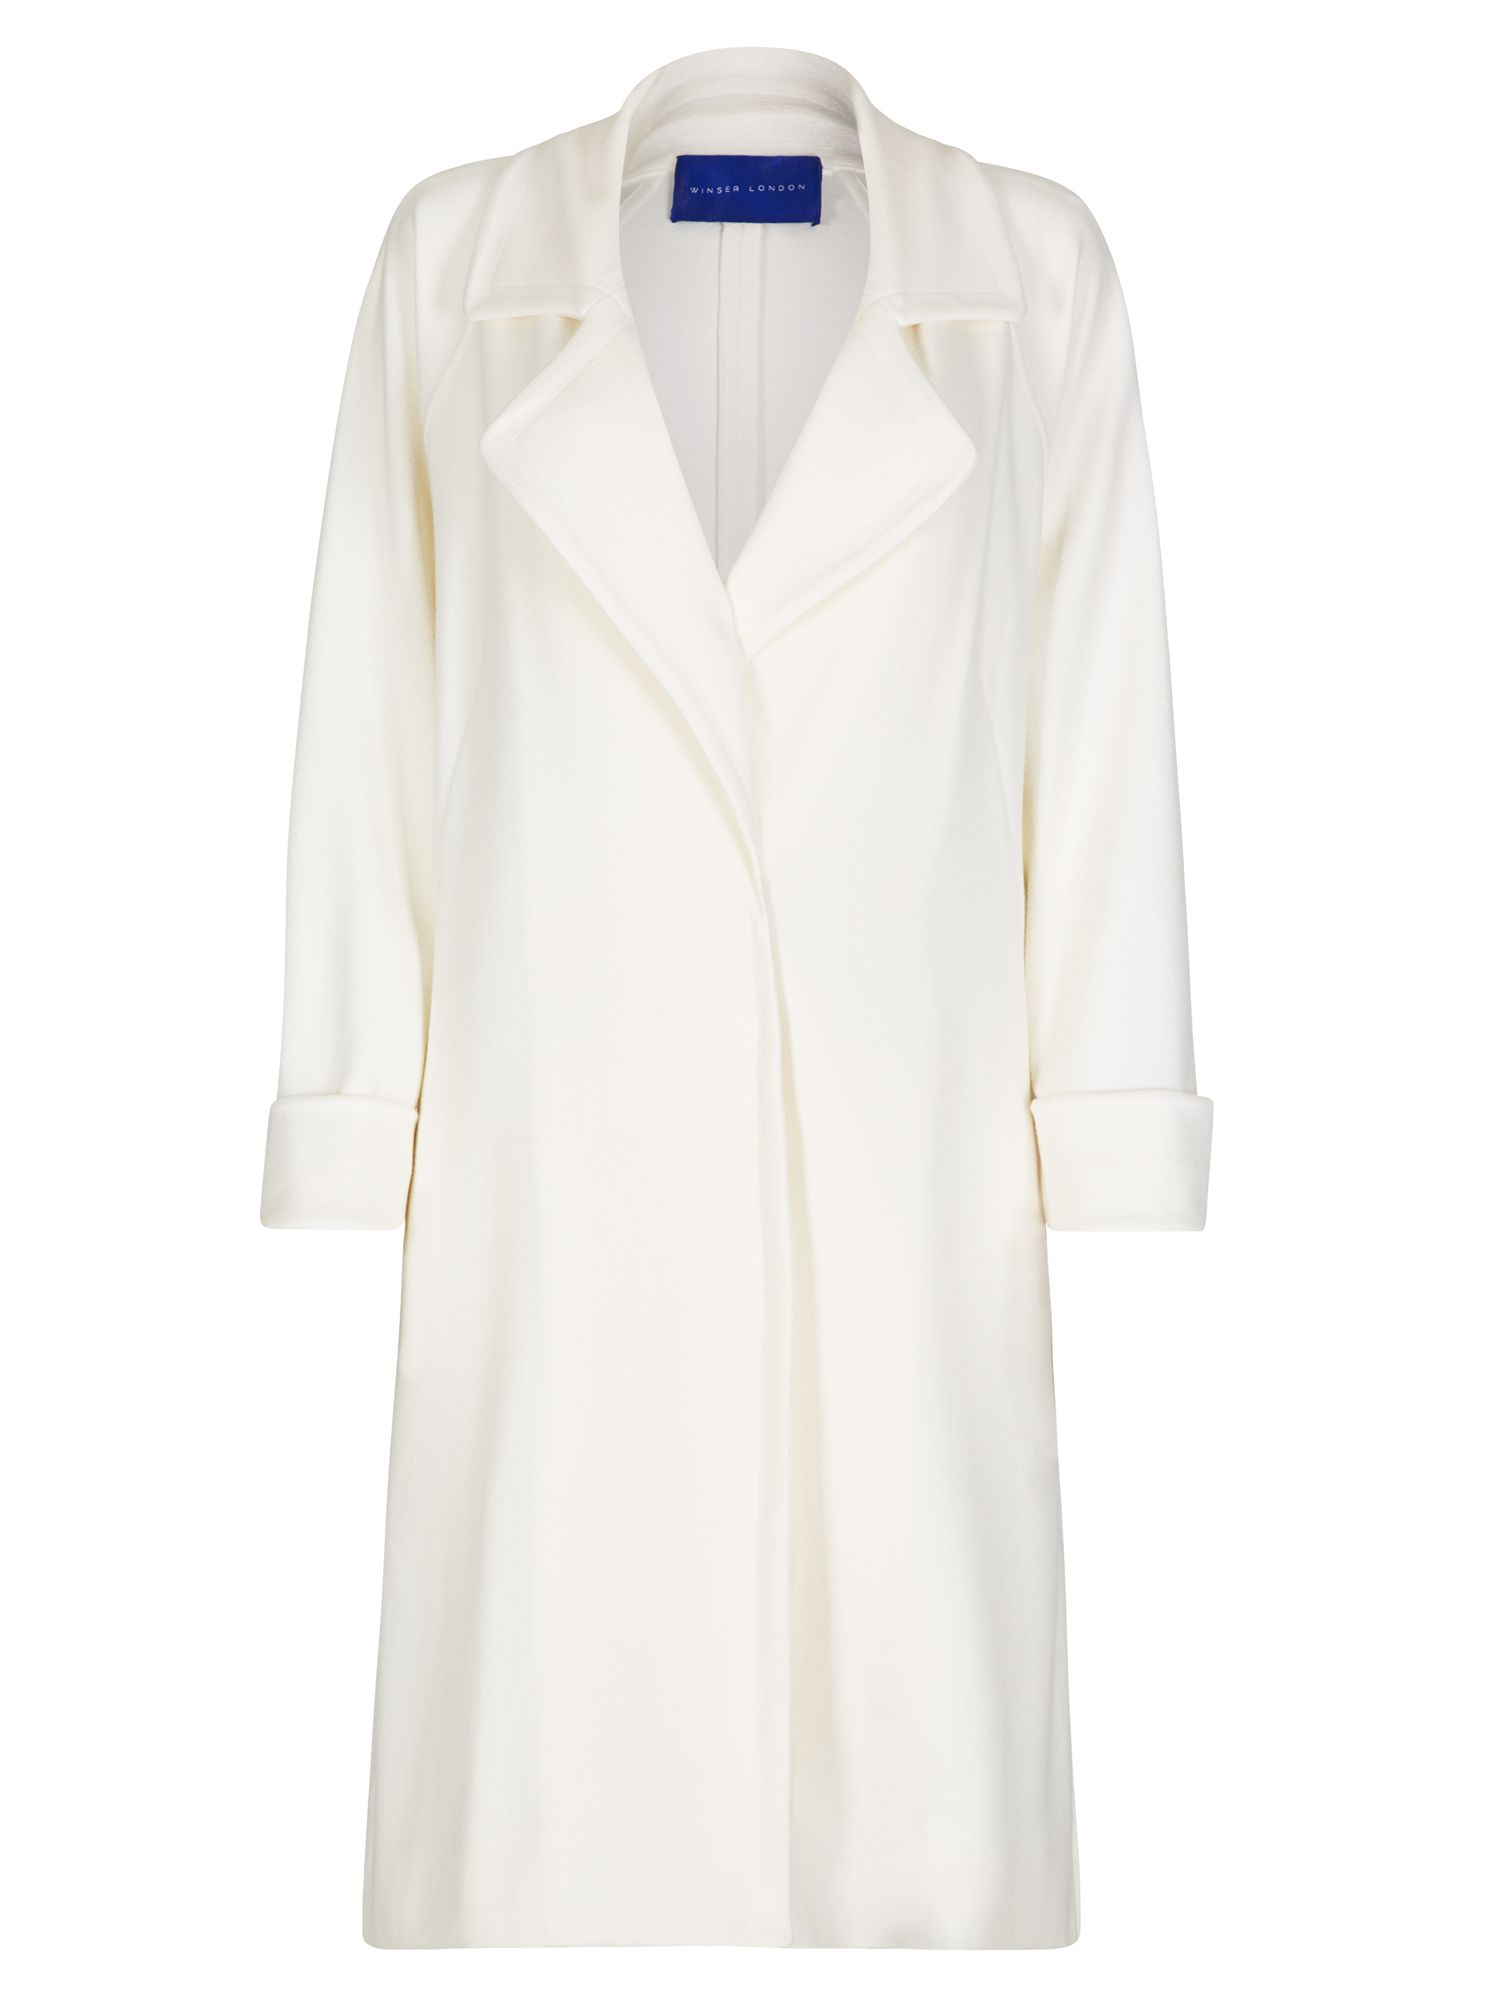 Winser London Crepe Jersey A Line Coat, Cream